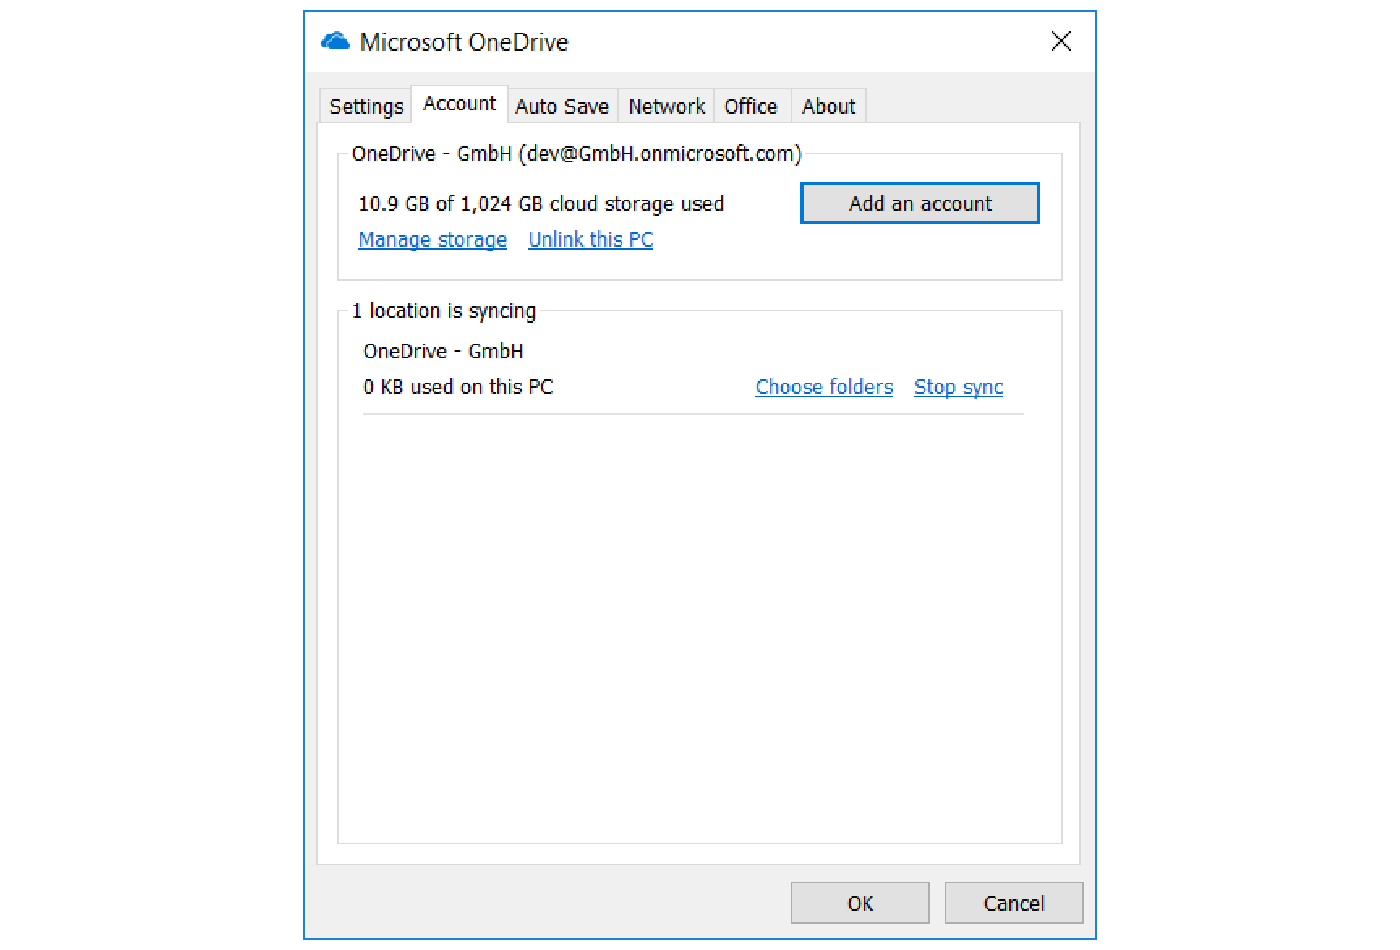 OneDrive for Business client Account ribbon